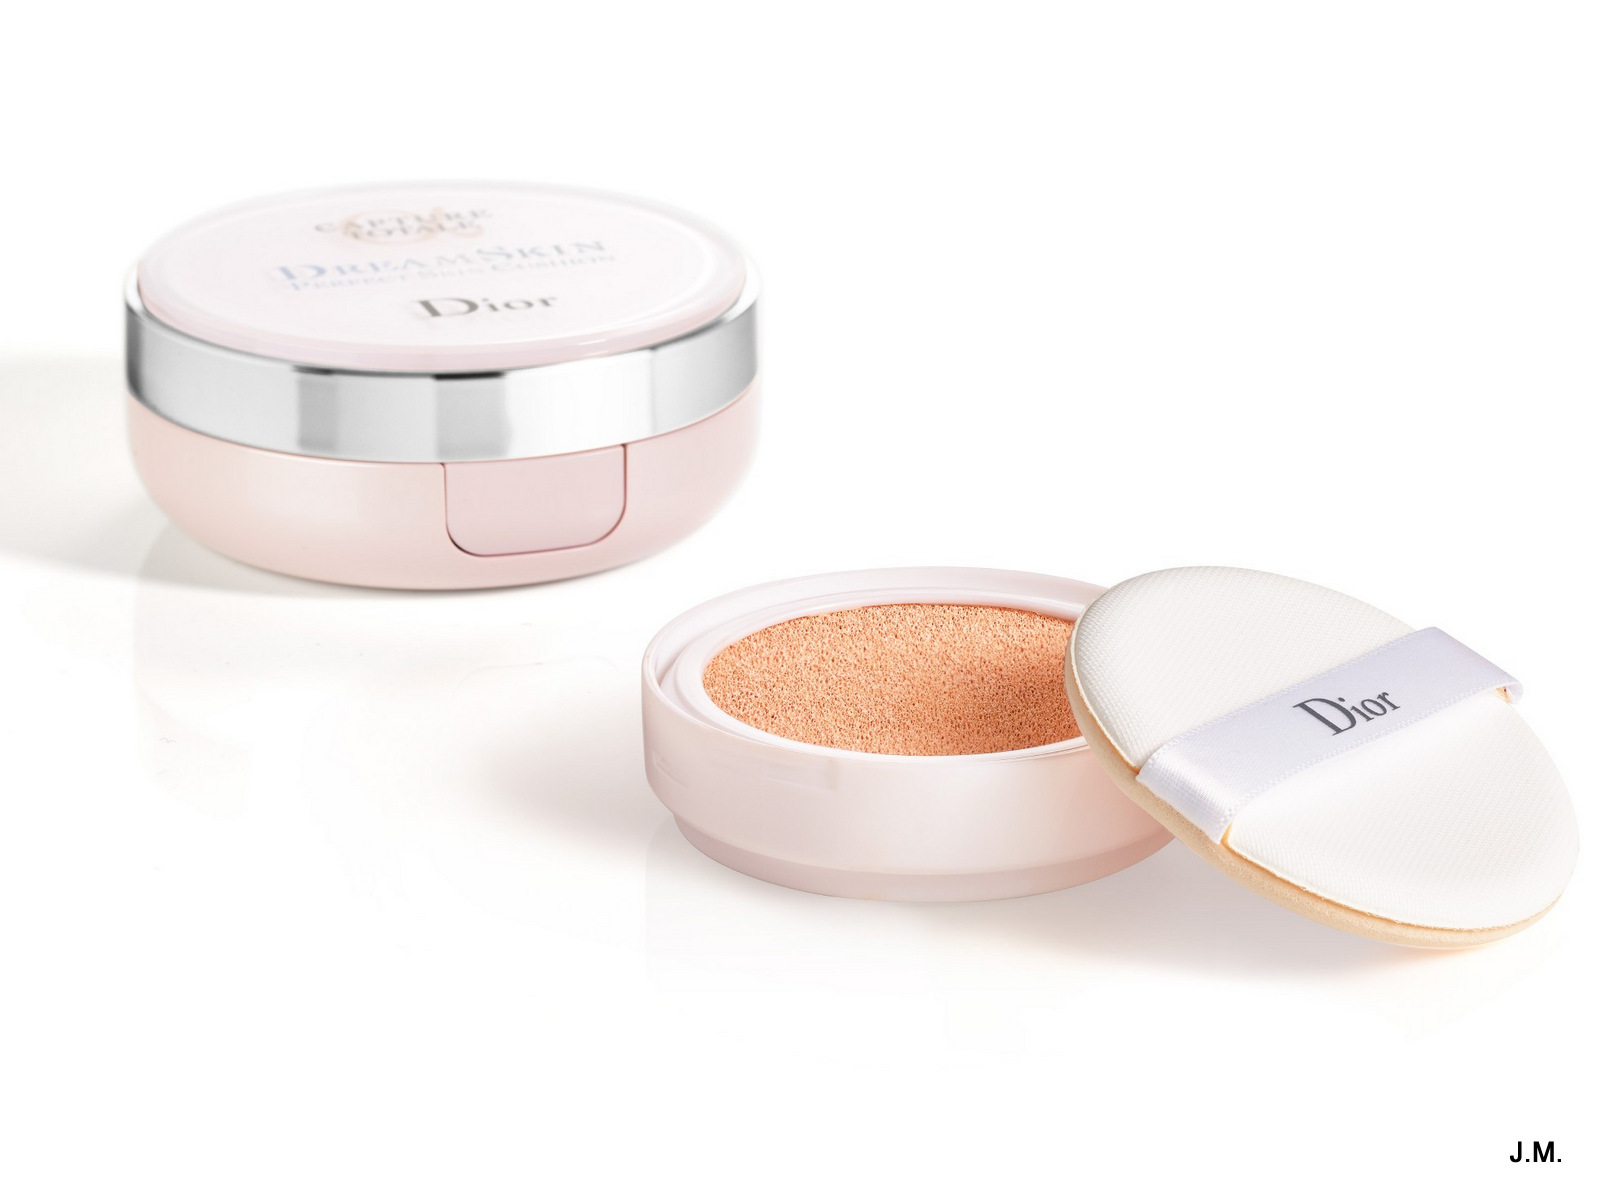 Dior Capture Totale Dreamskin Perfect Skin Cushion Spf 50 Pa